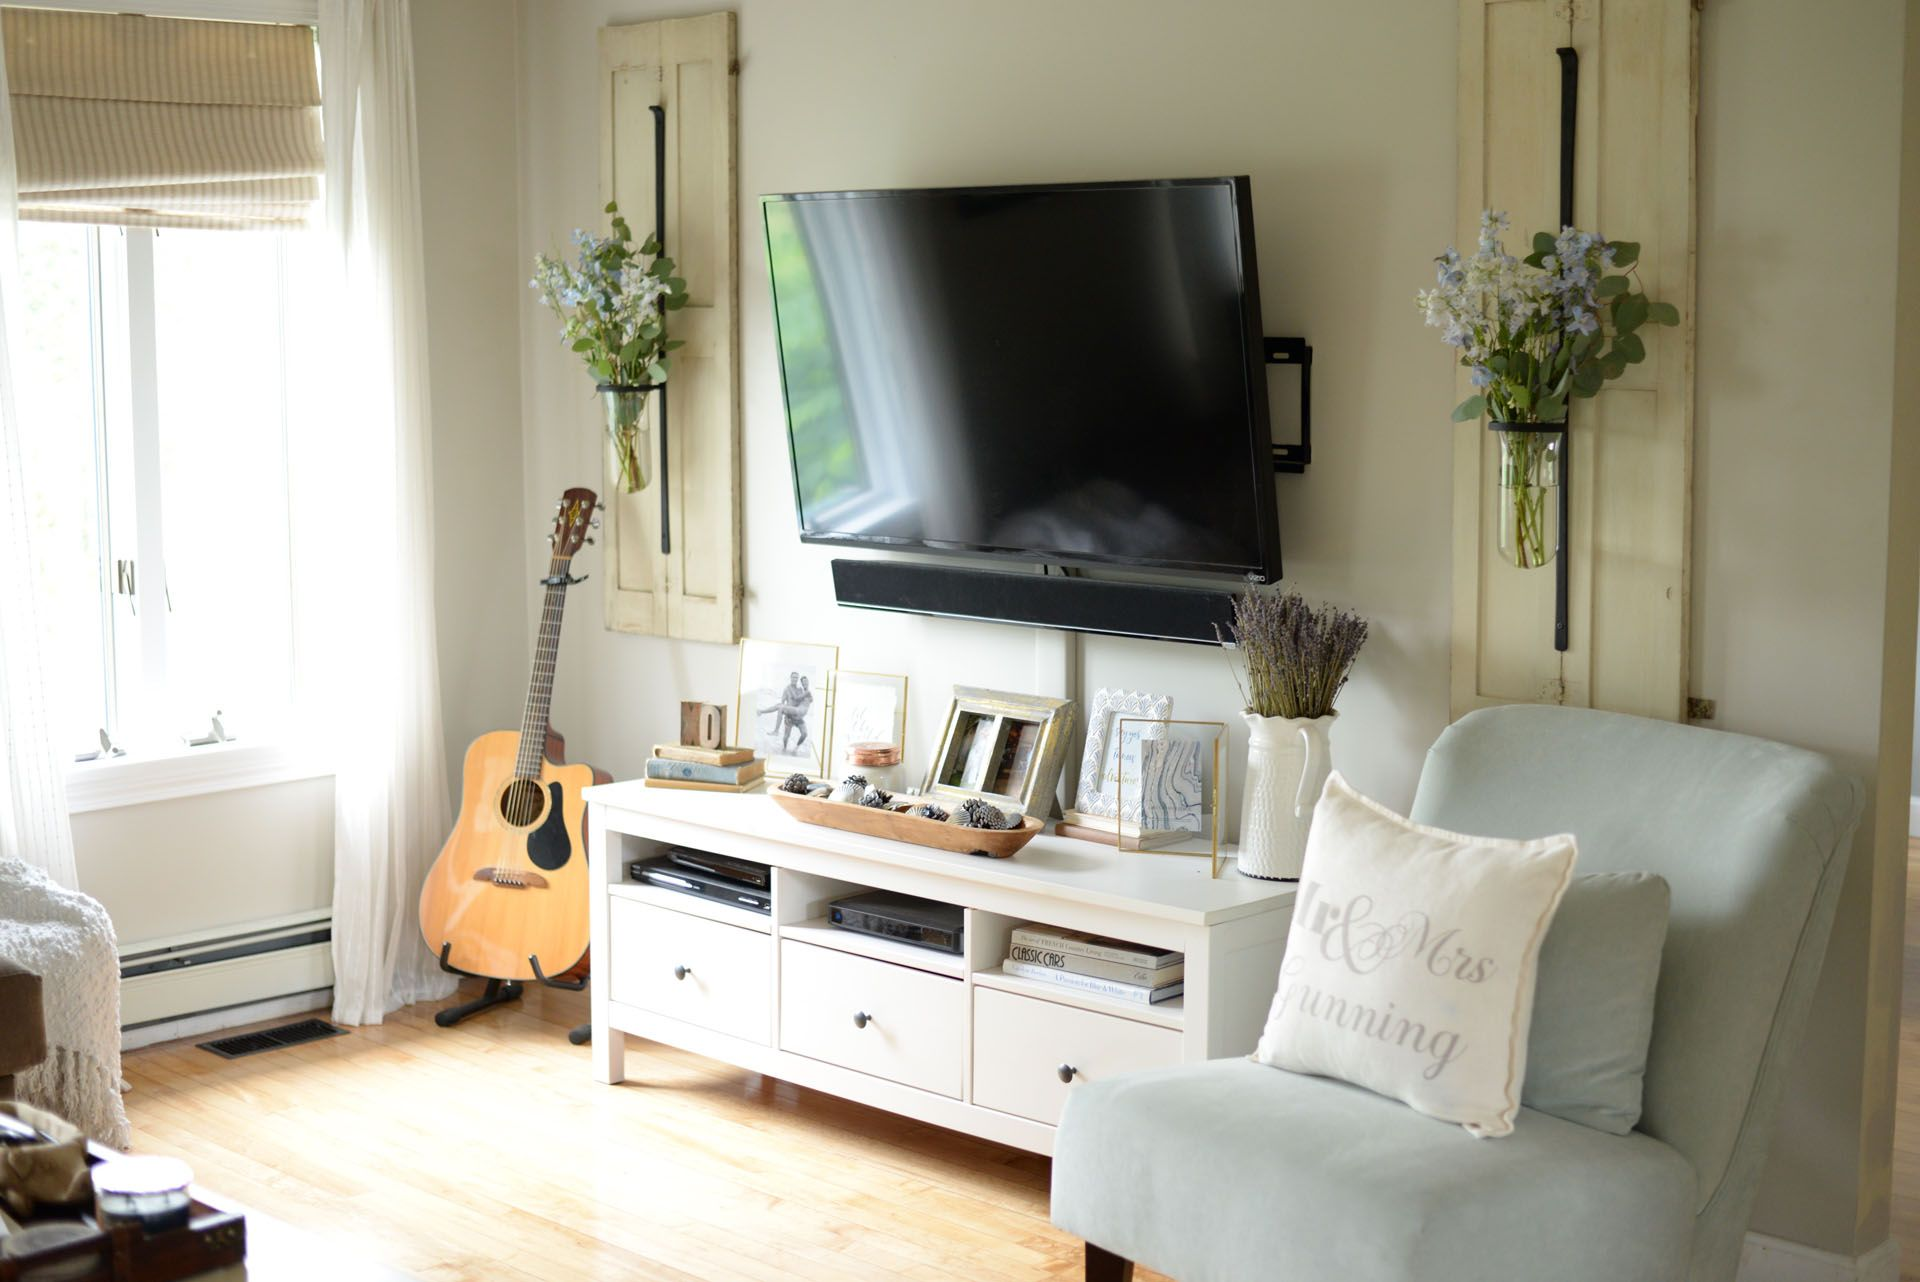 Ideas For Decorating Around A Flat Screen Tv How To Decorate Around Your Tv Like A Pro Living Room Tv Wall